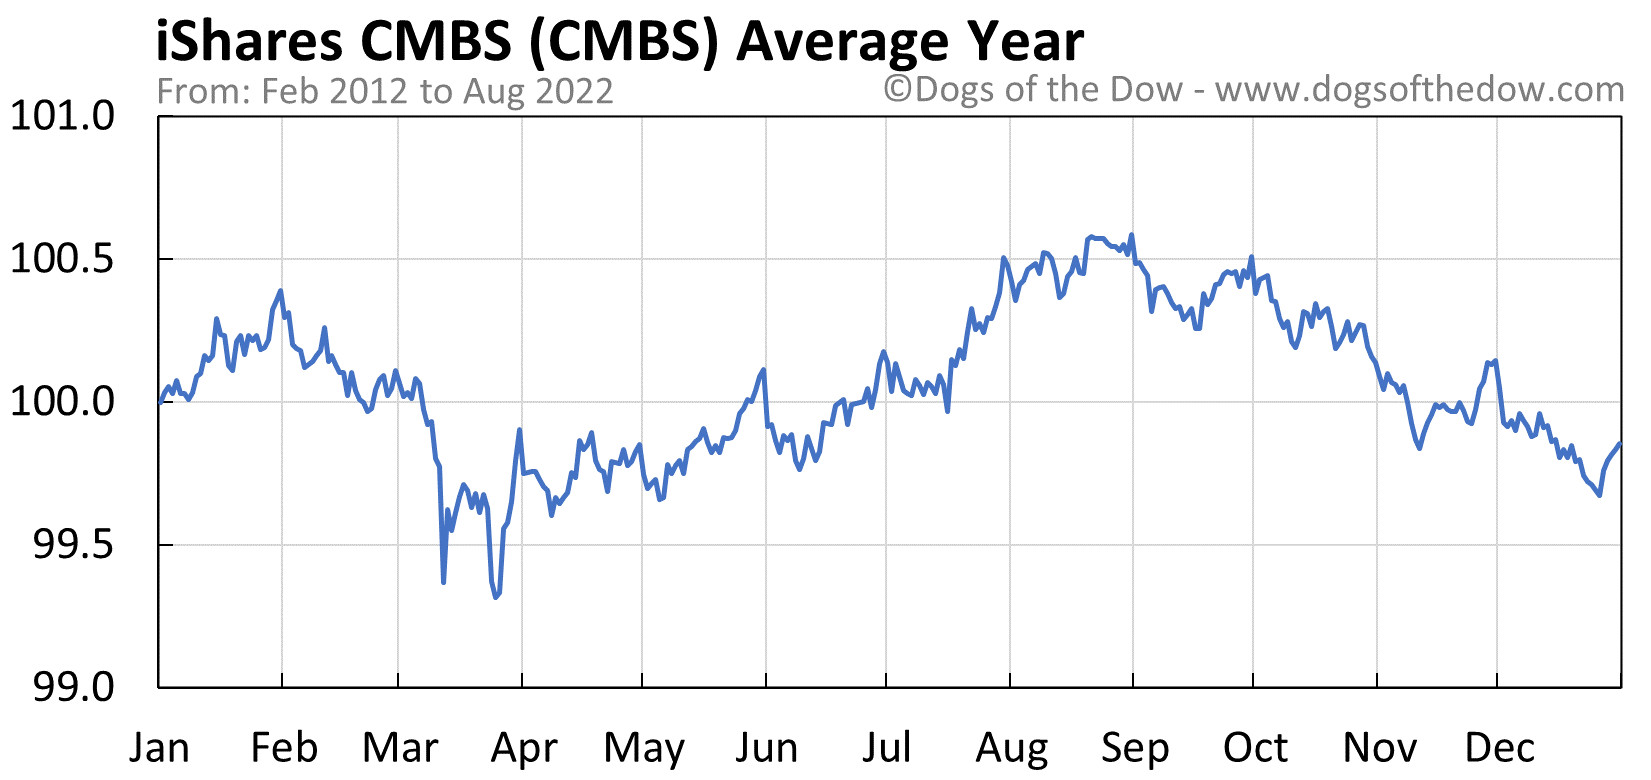 CMBS average year chart